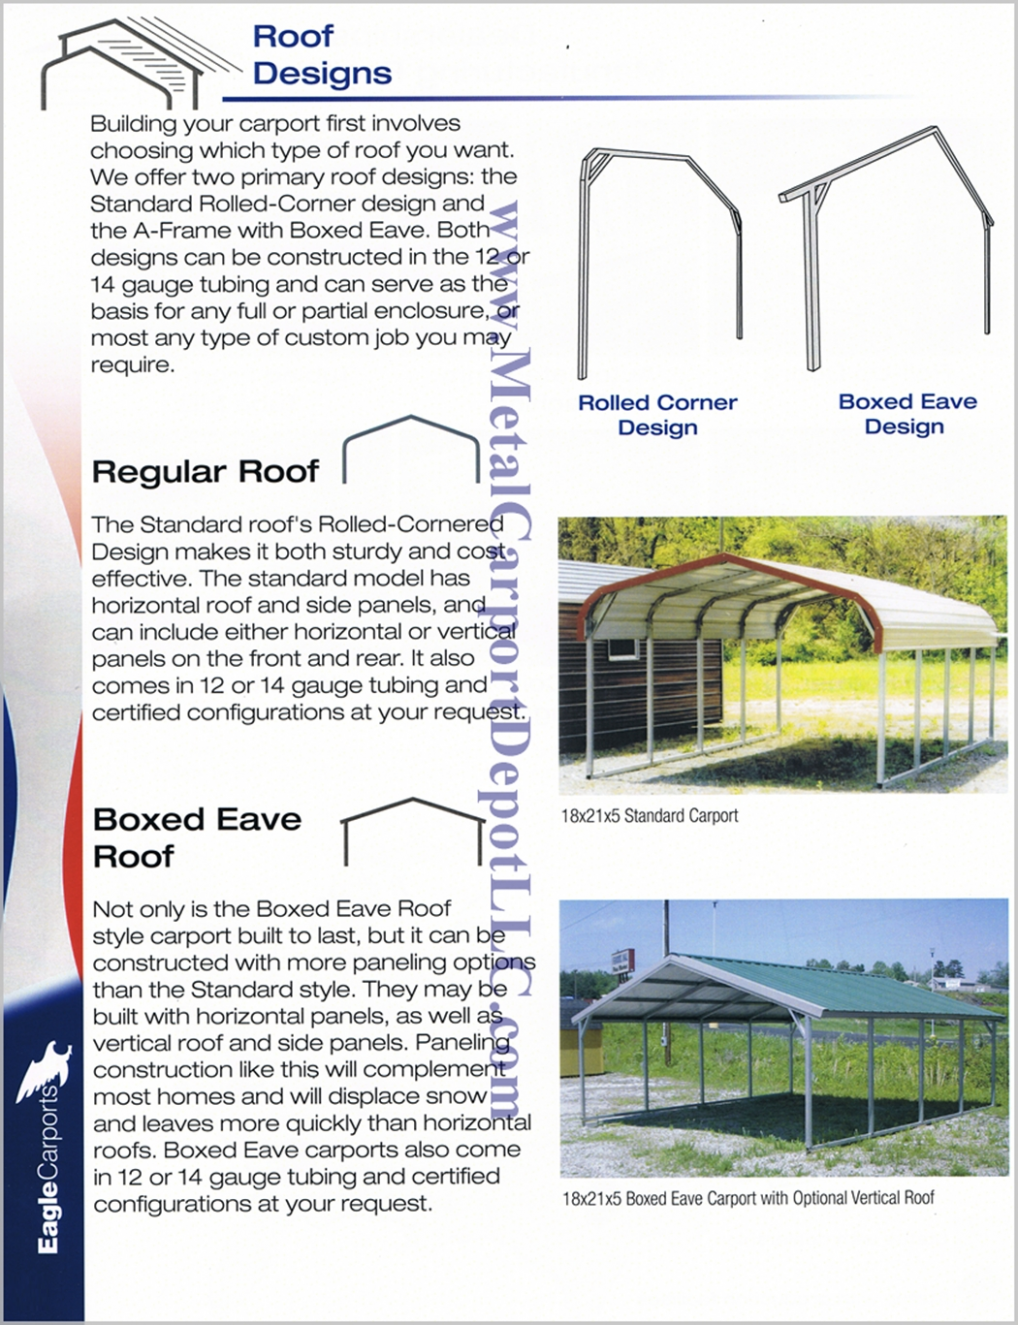 Ten Thoughts You Have As Metal Carport Dimensions Approaches | metal carport dimensions